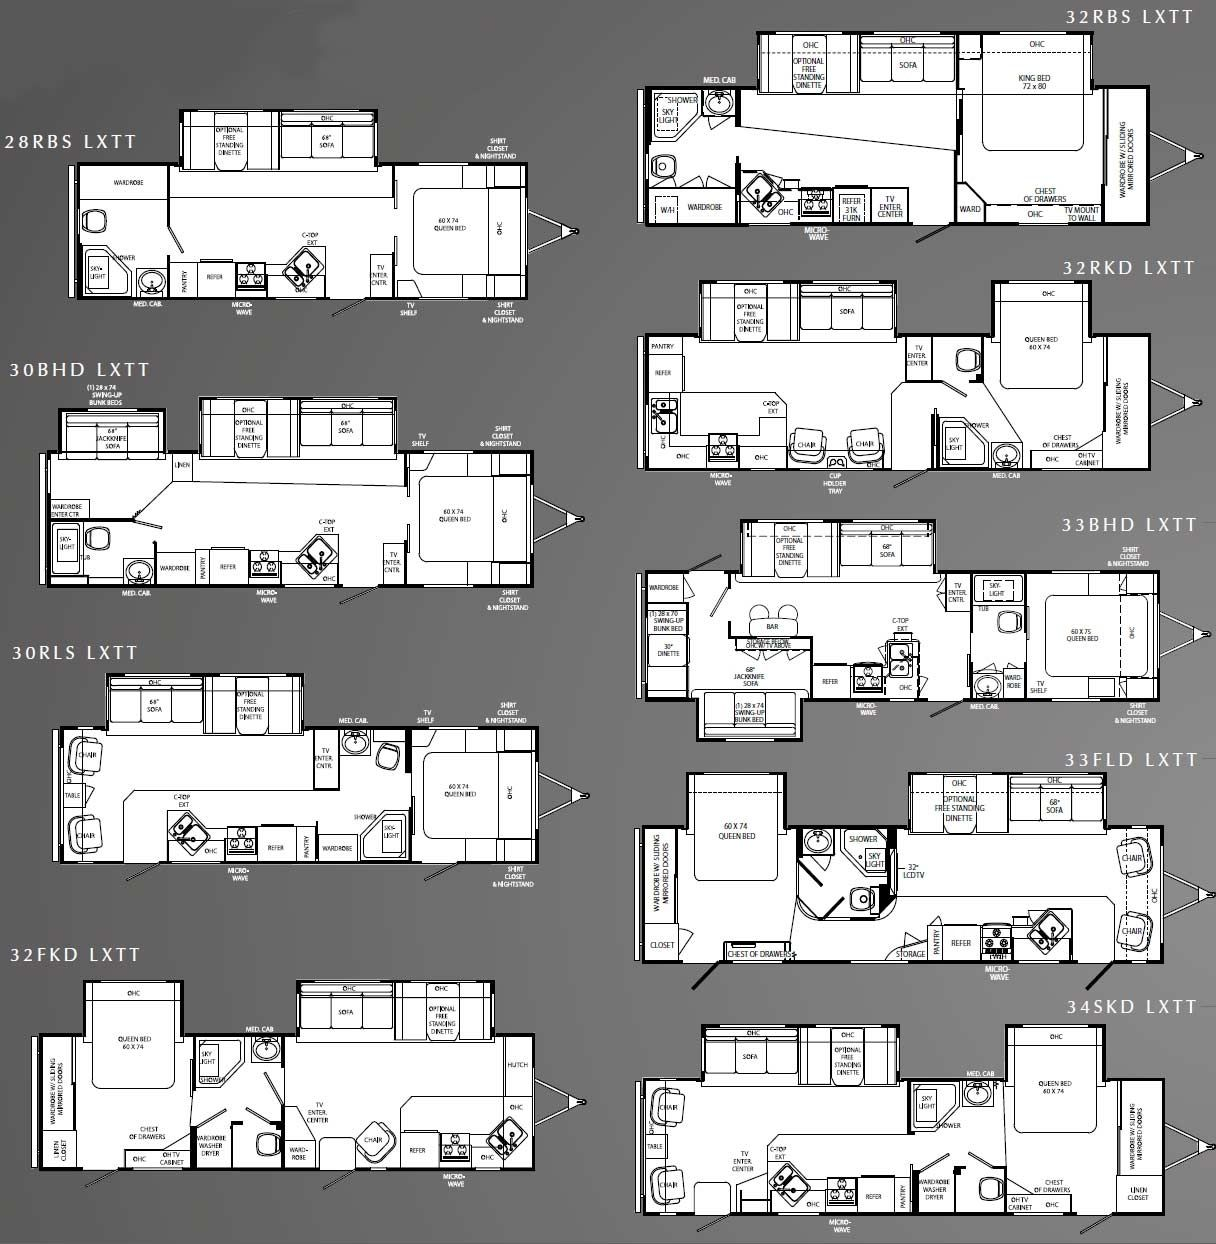 2005 Prowler Travel Trailer Floor Plans - A house is built